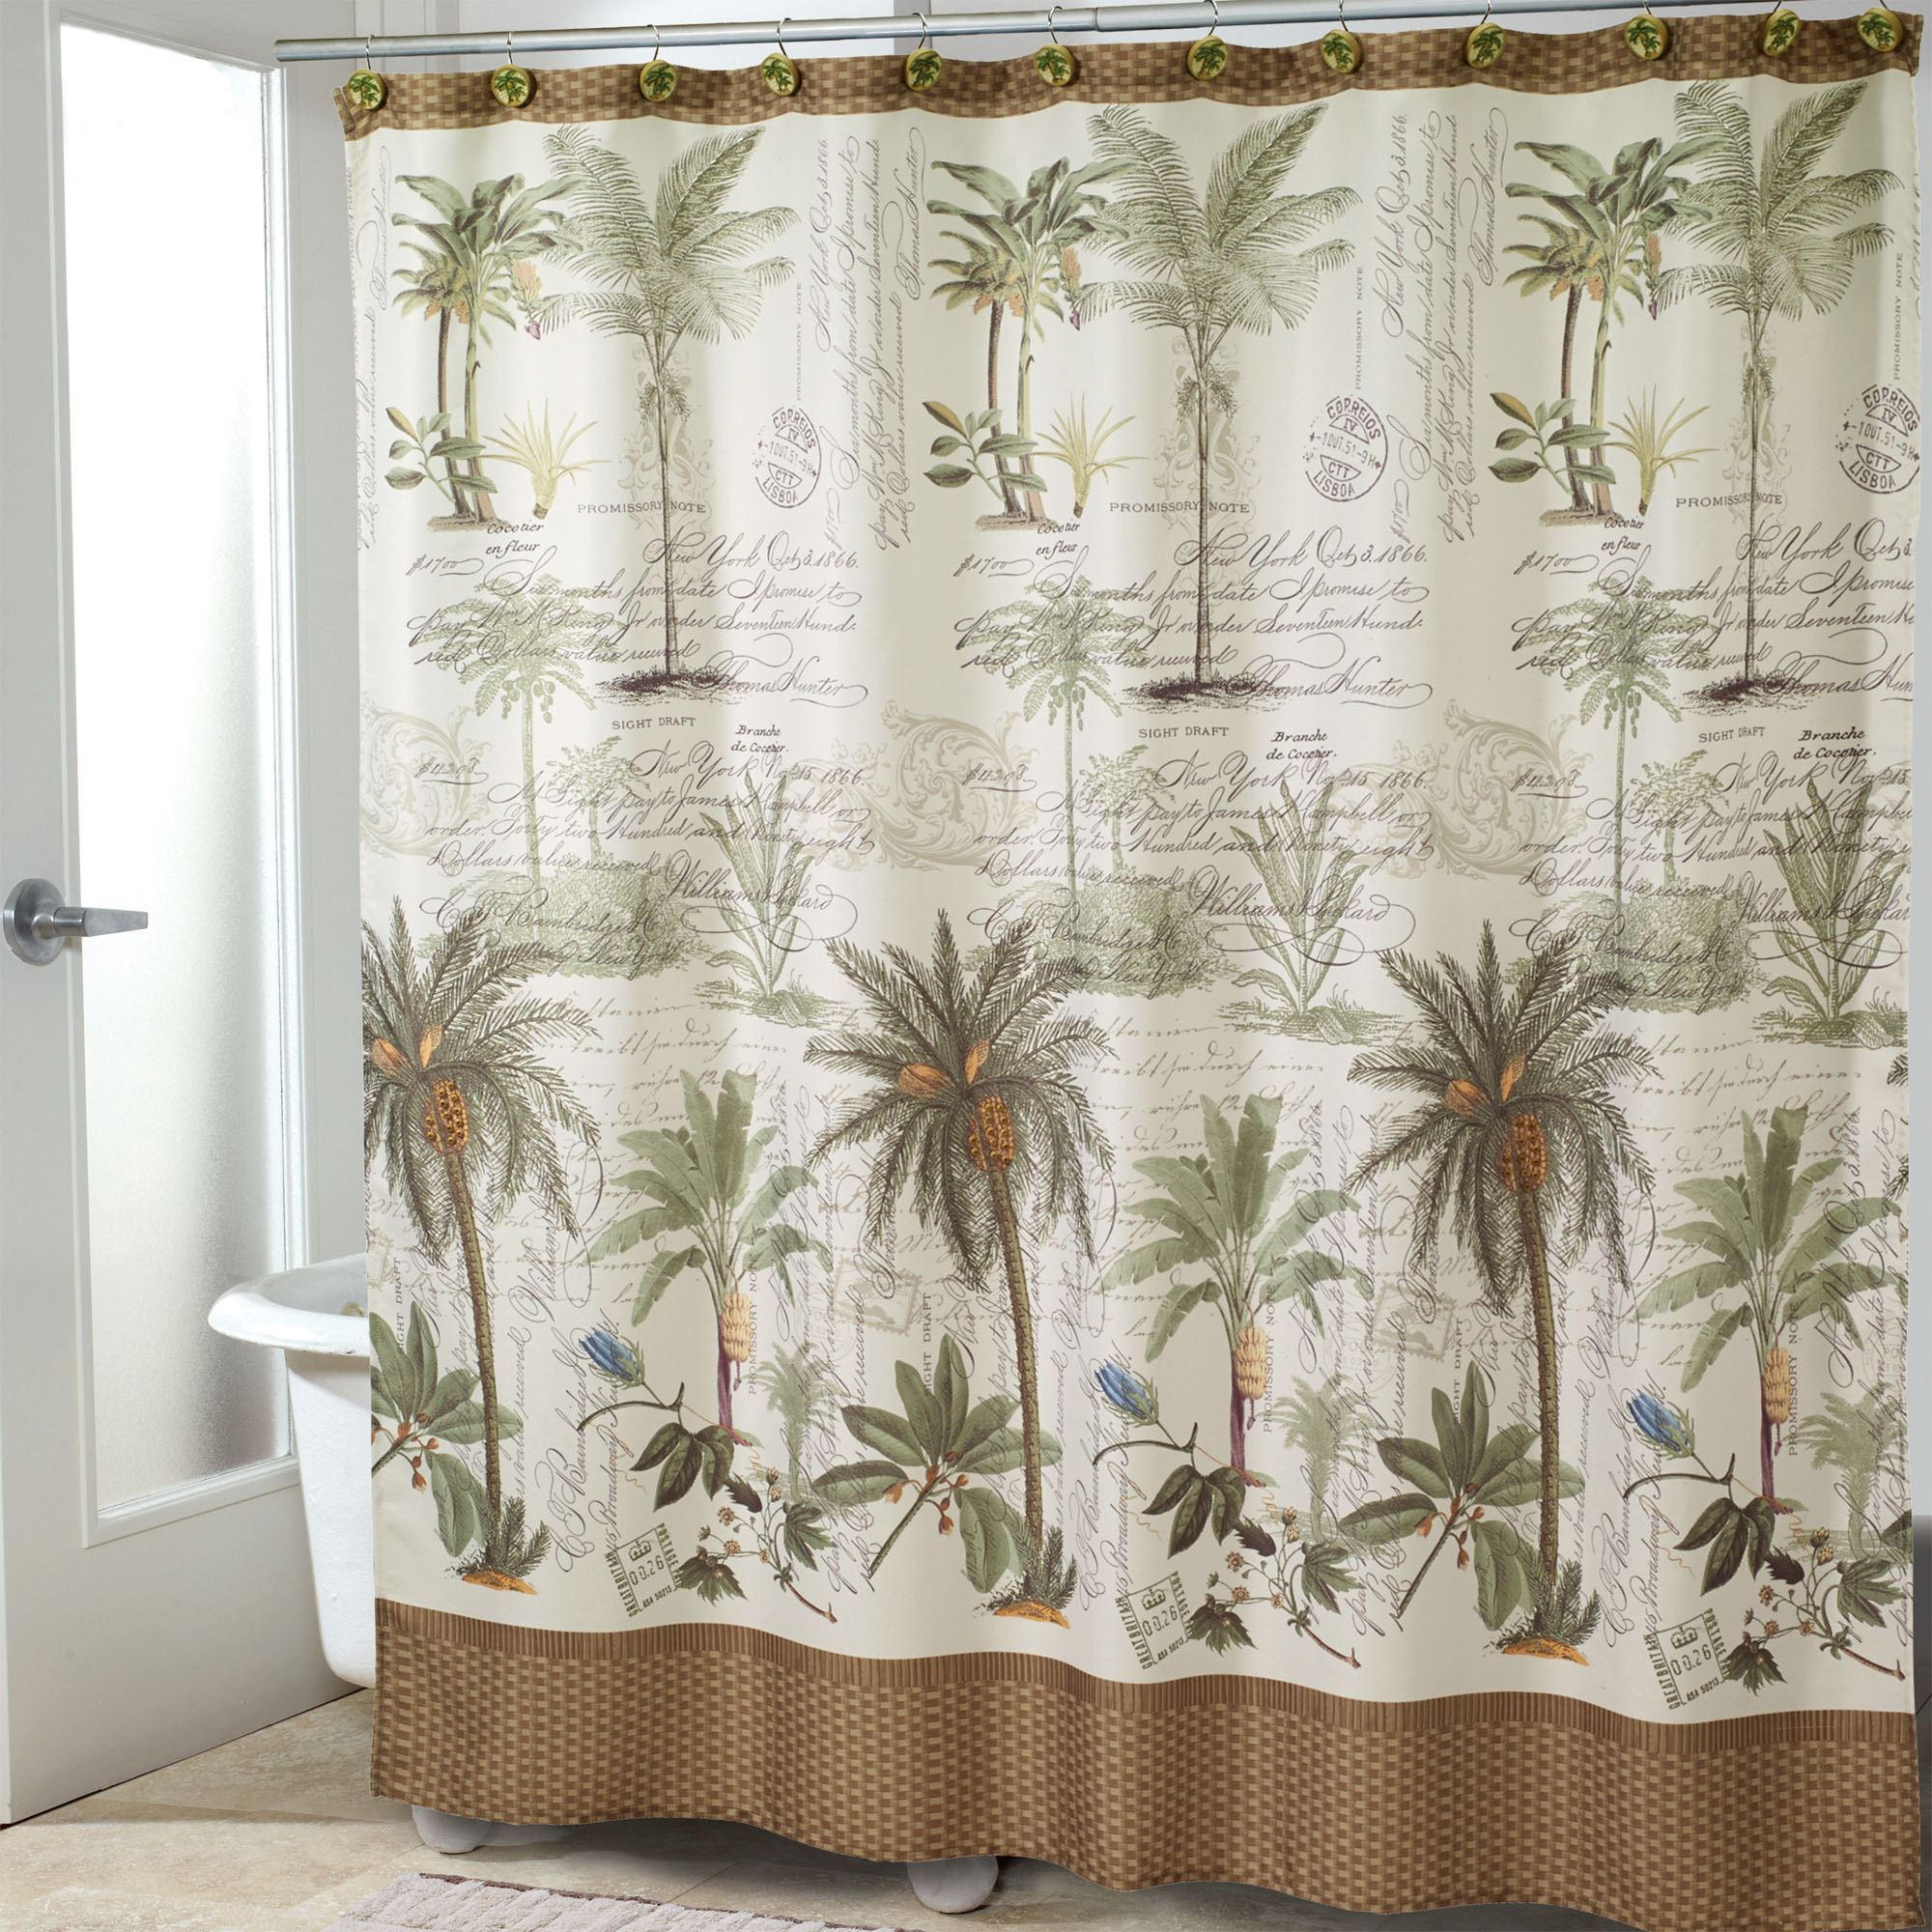 Colony Palm Shower Curtain Ivory 72 X